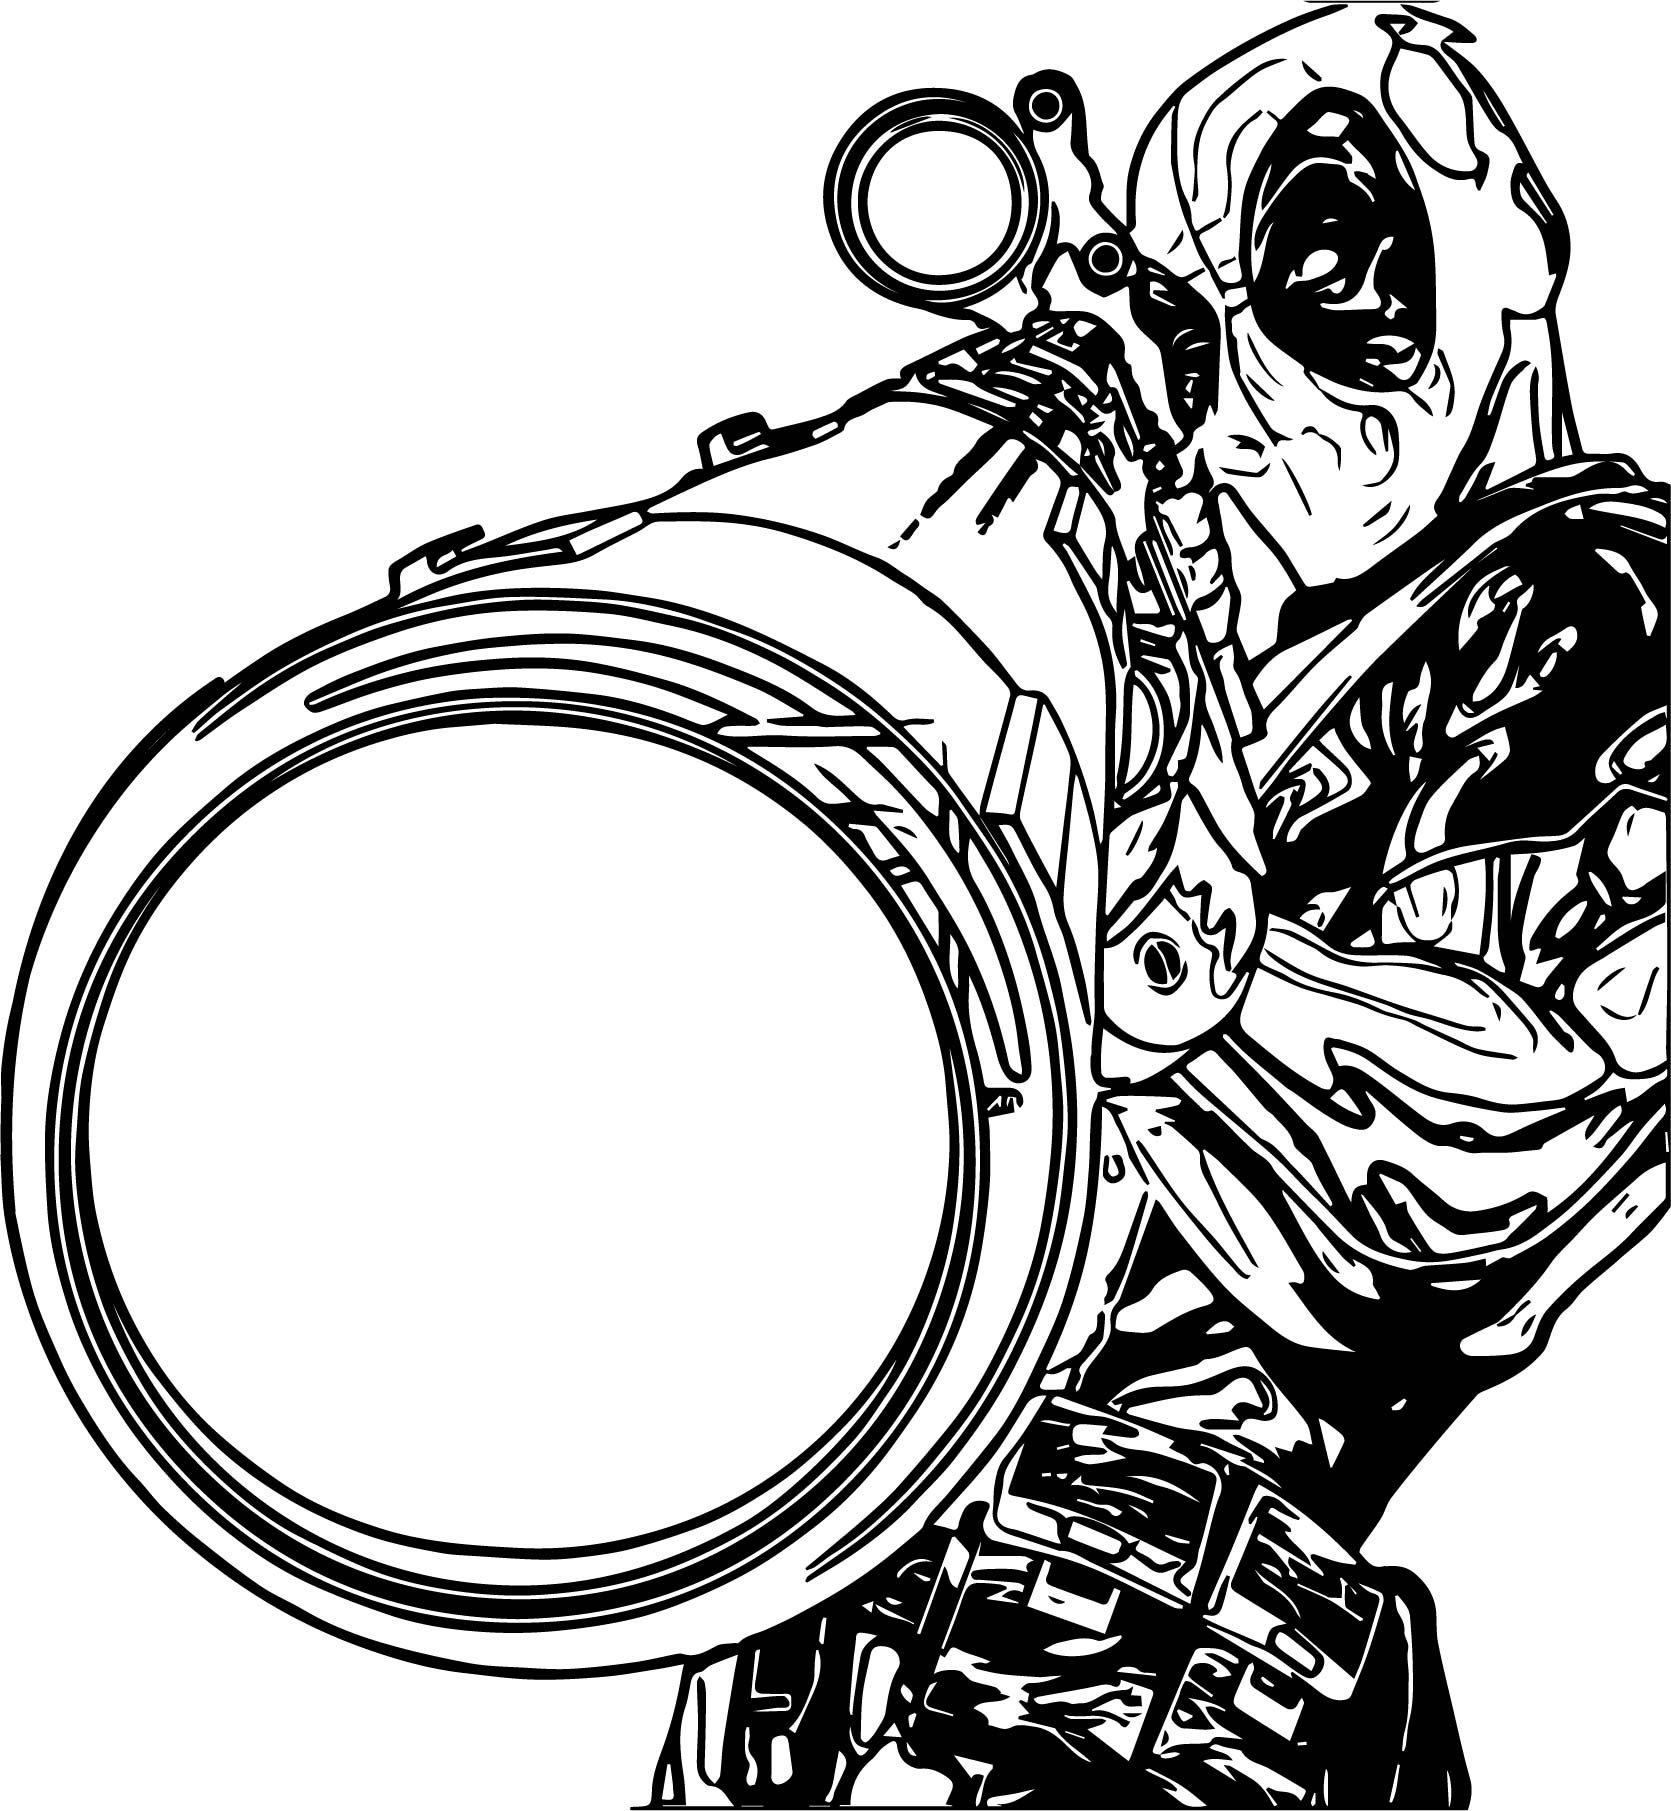 Deadpool Sniper Coloring Page | Coloring pages, Sniper, Coloring pages for  boys